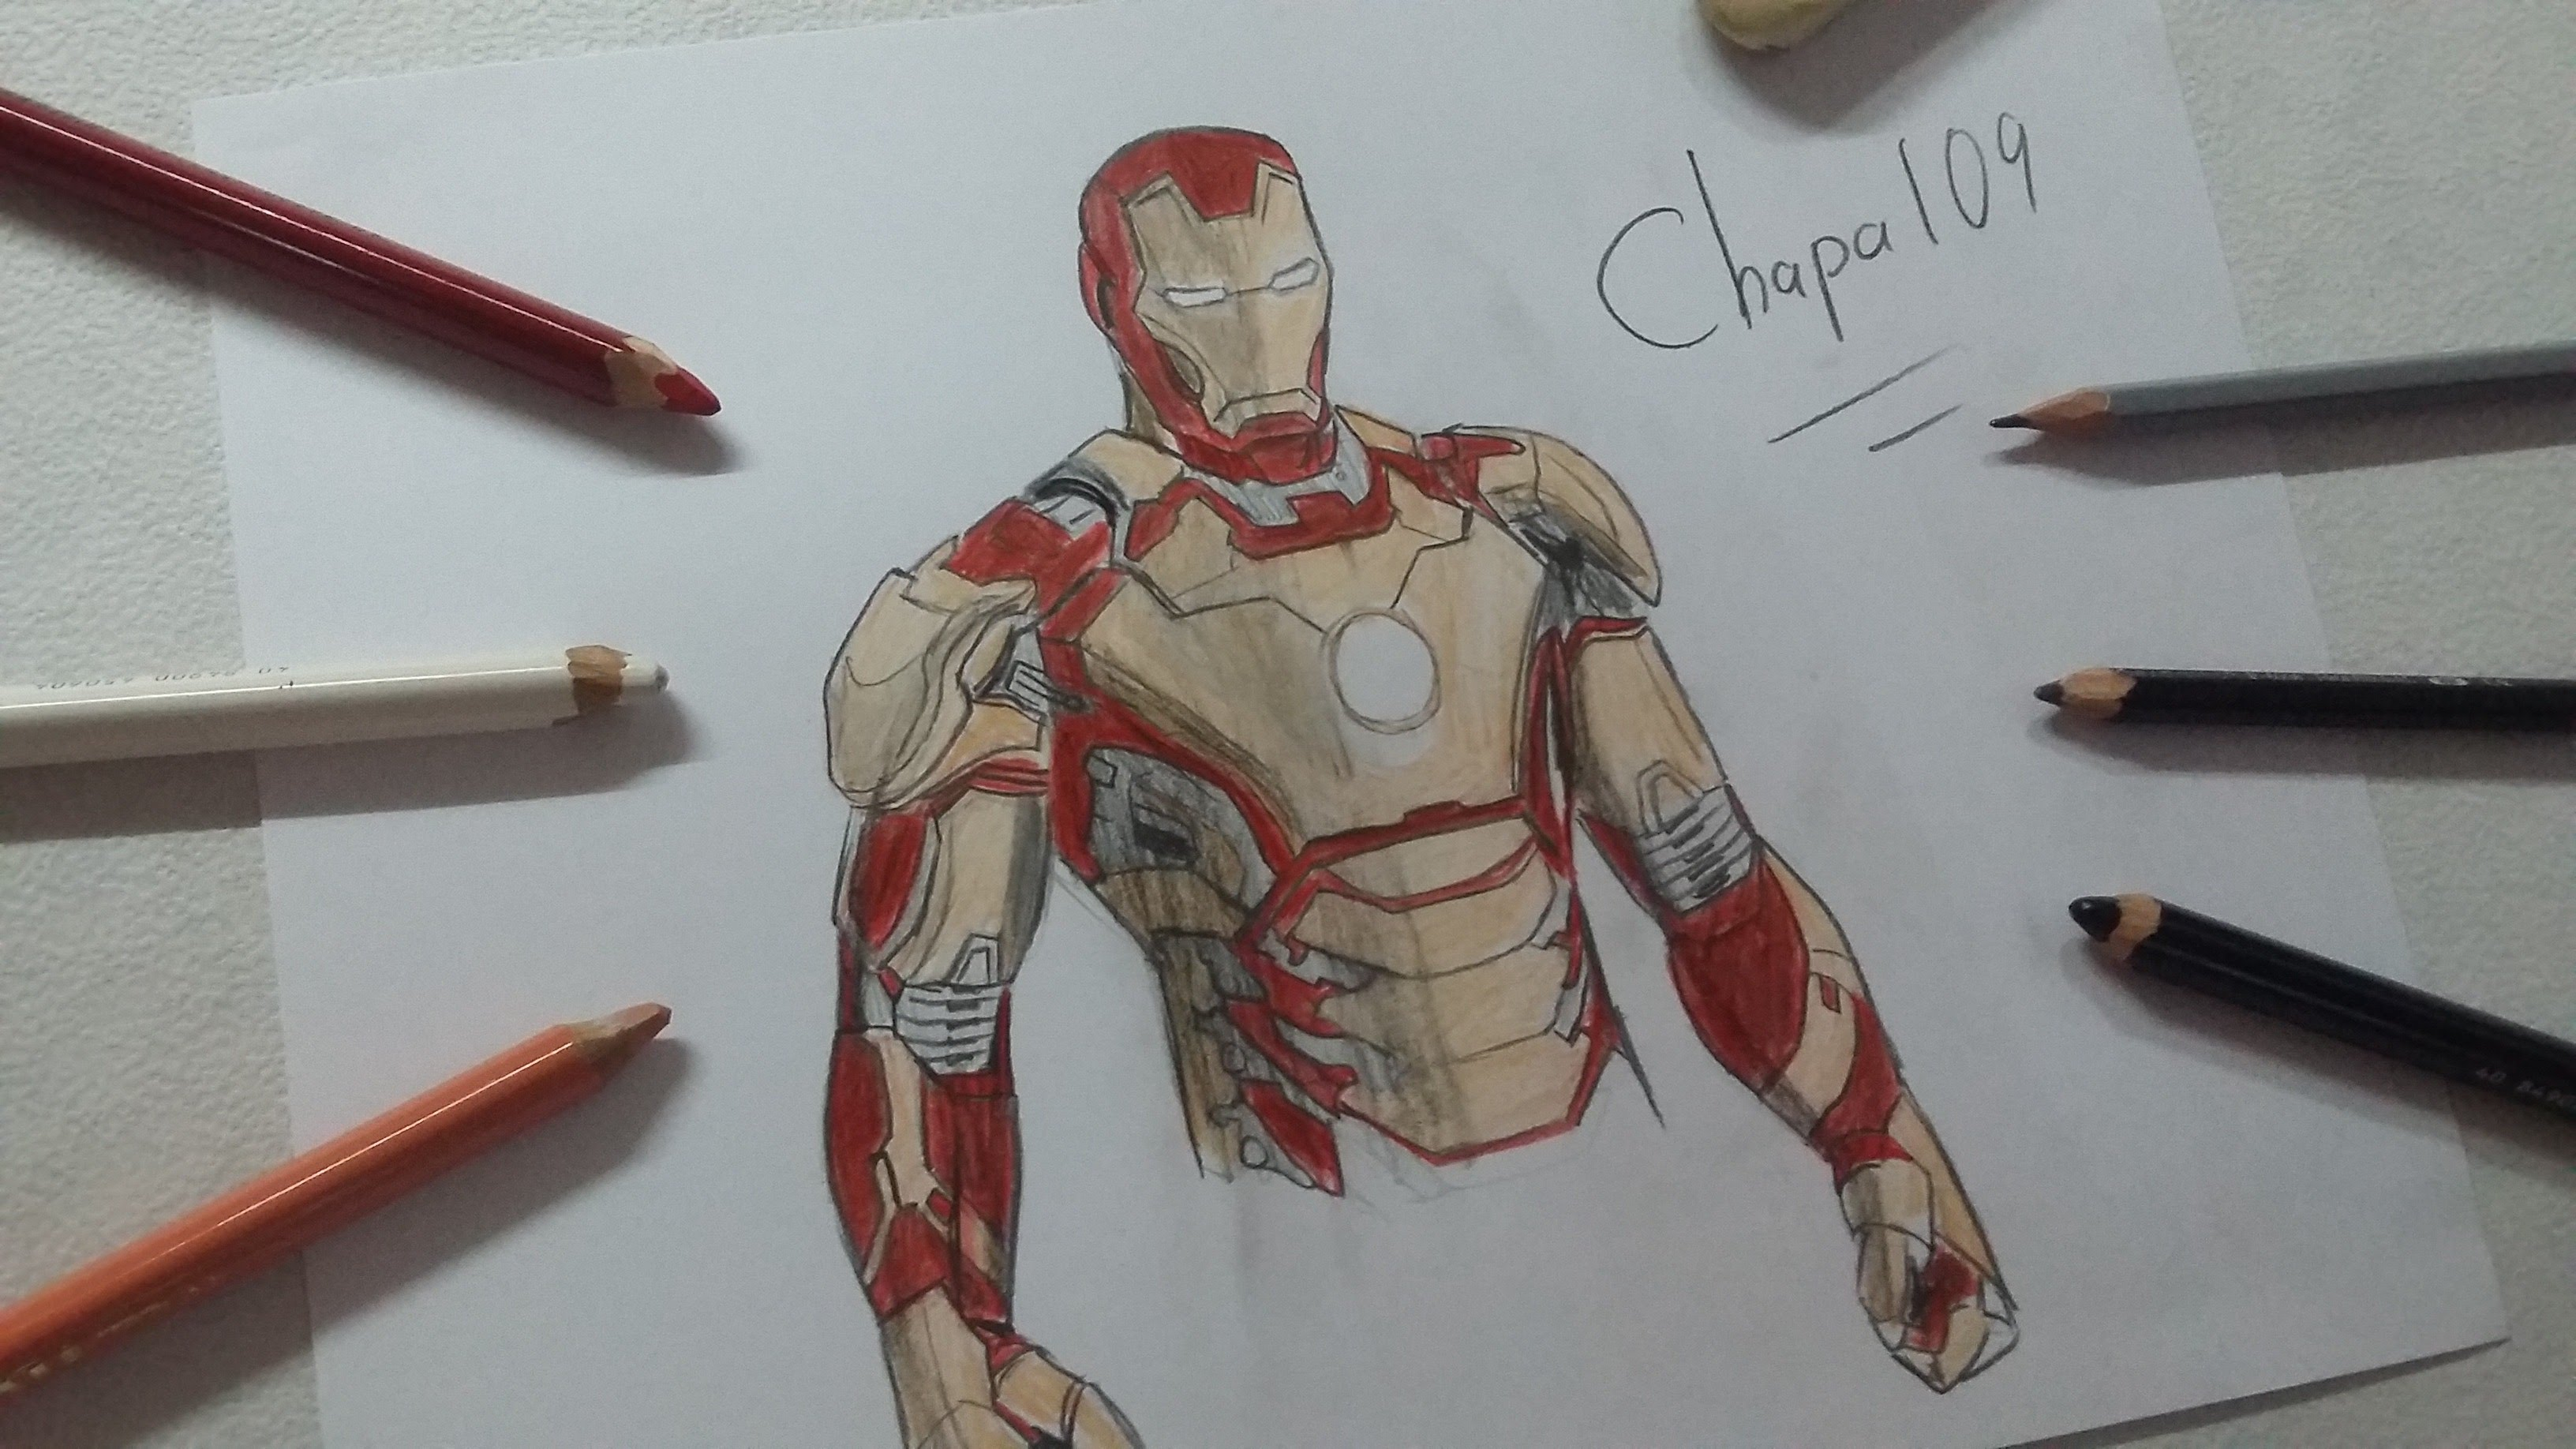 3264x1836 Dibujo De Iron Man (Mark 42) Iron Man 3 Drawing Iron Man (Mark42